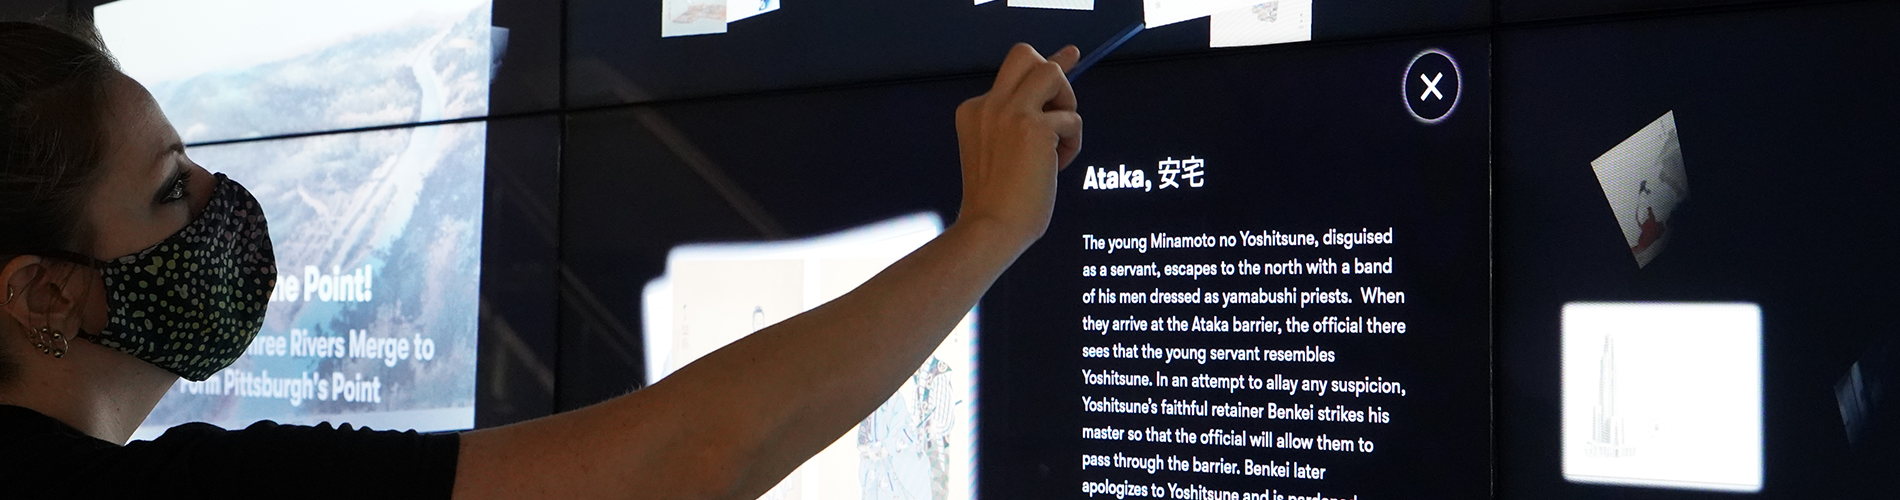 A woman using a stylus to on the Interactive Wall